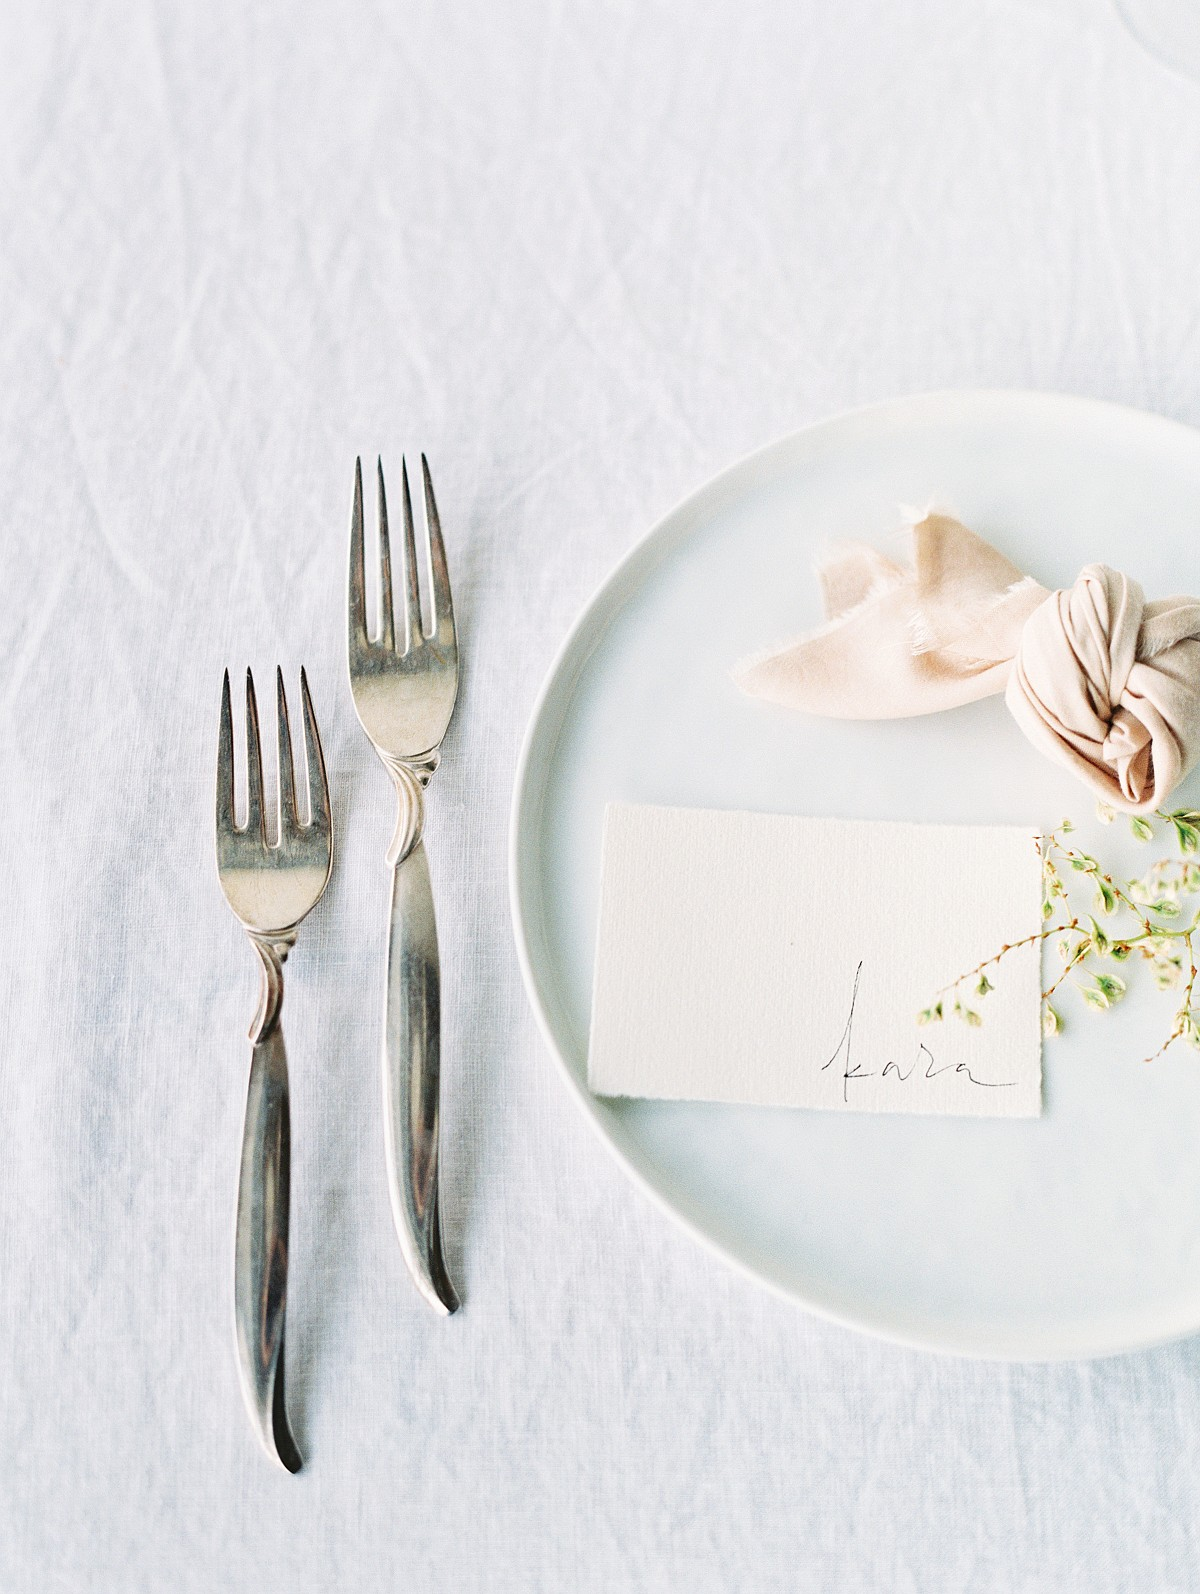 Minimalist Wedding Inspiration in tones of blush, ivory, and grey